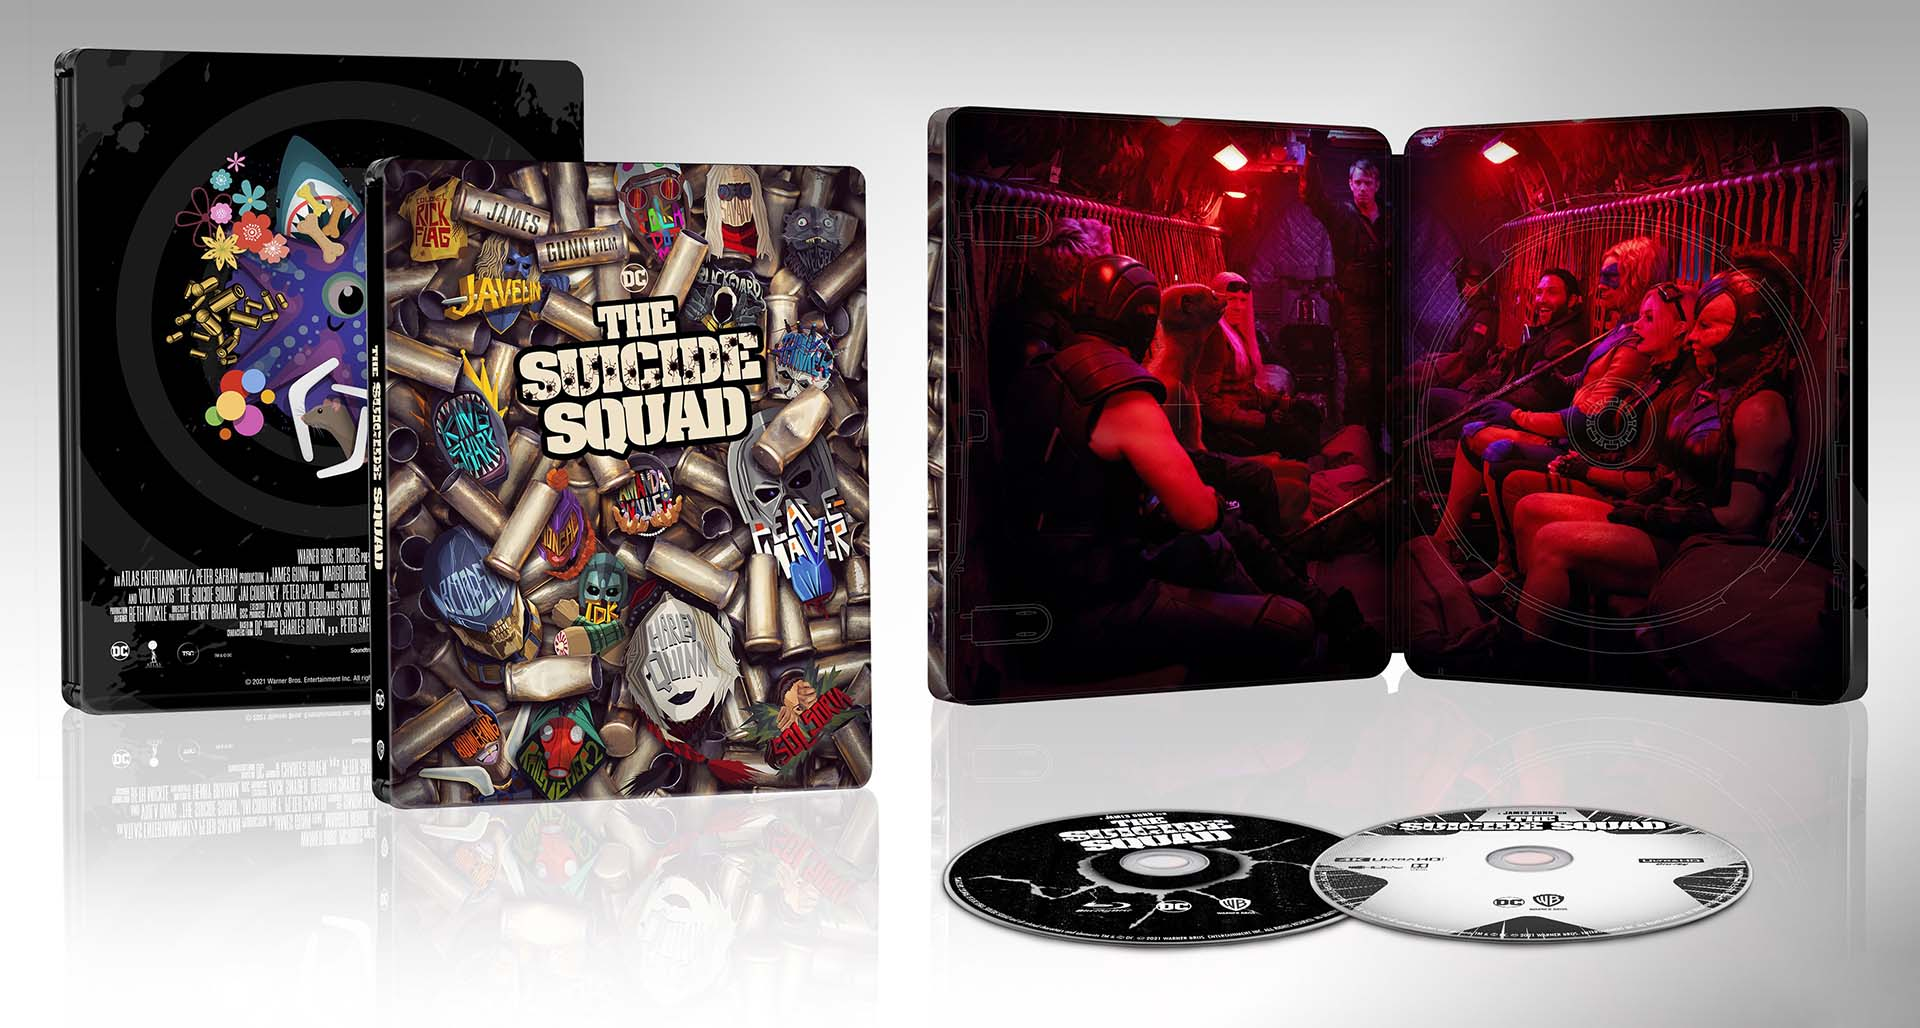 The Suicide Squad 4k Blu-ray SteelBook 1920